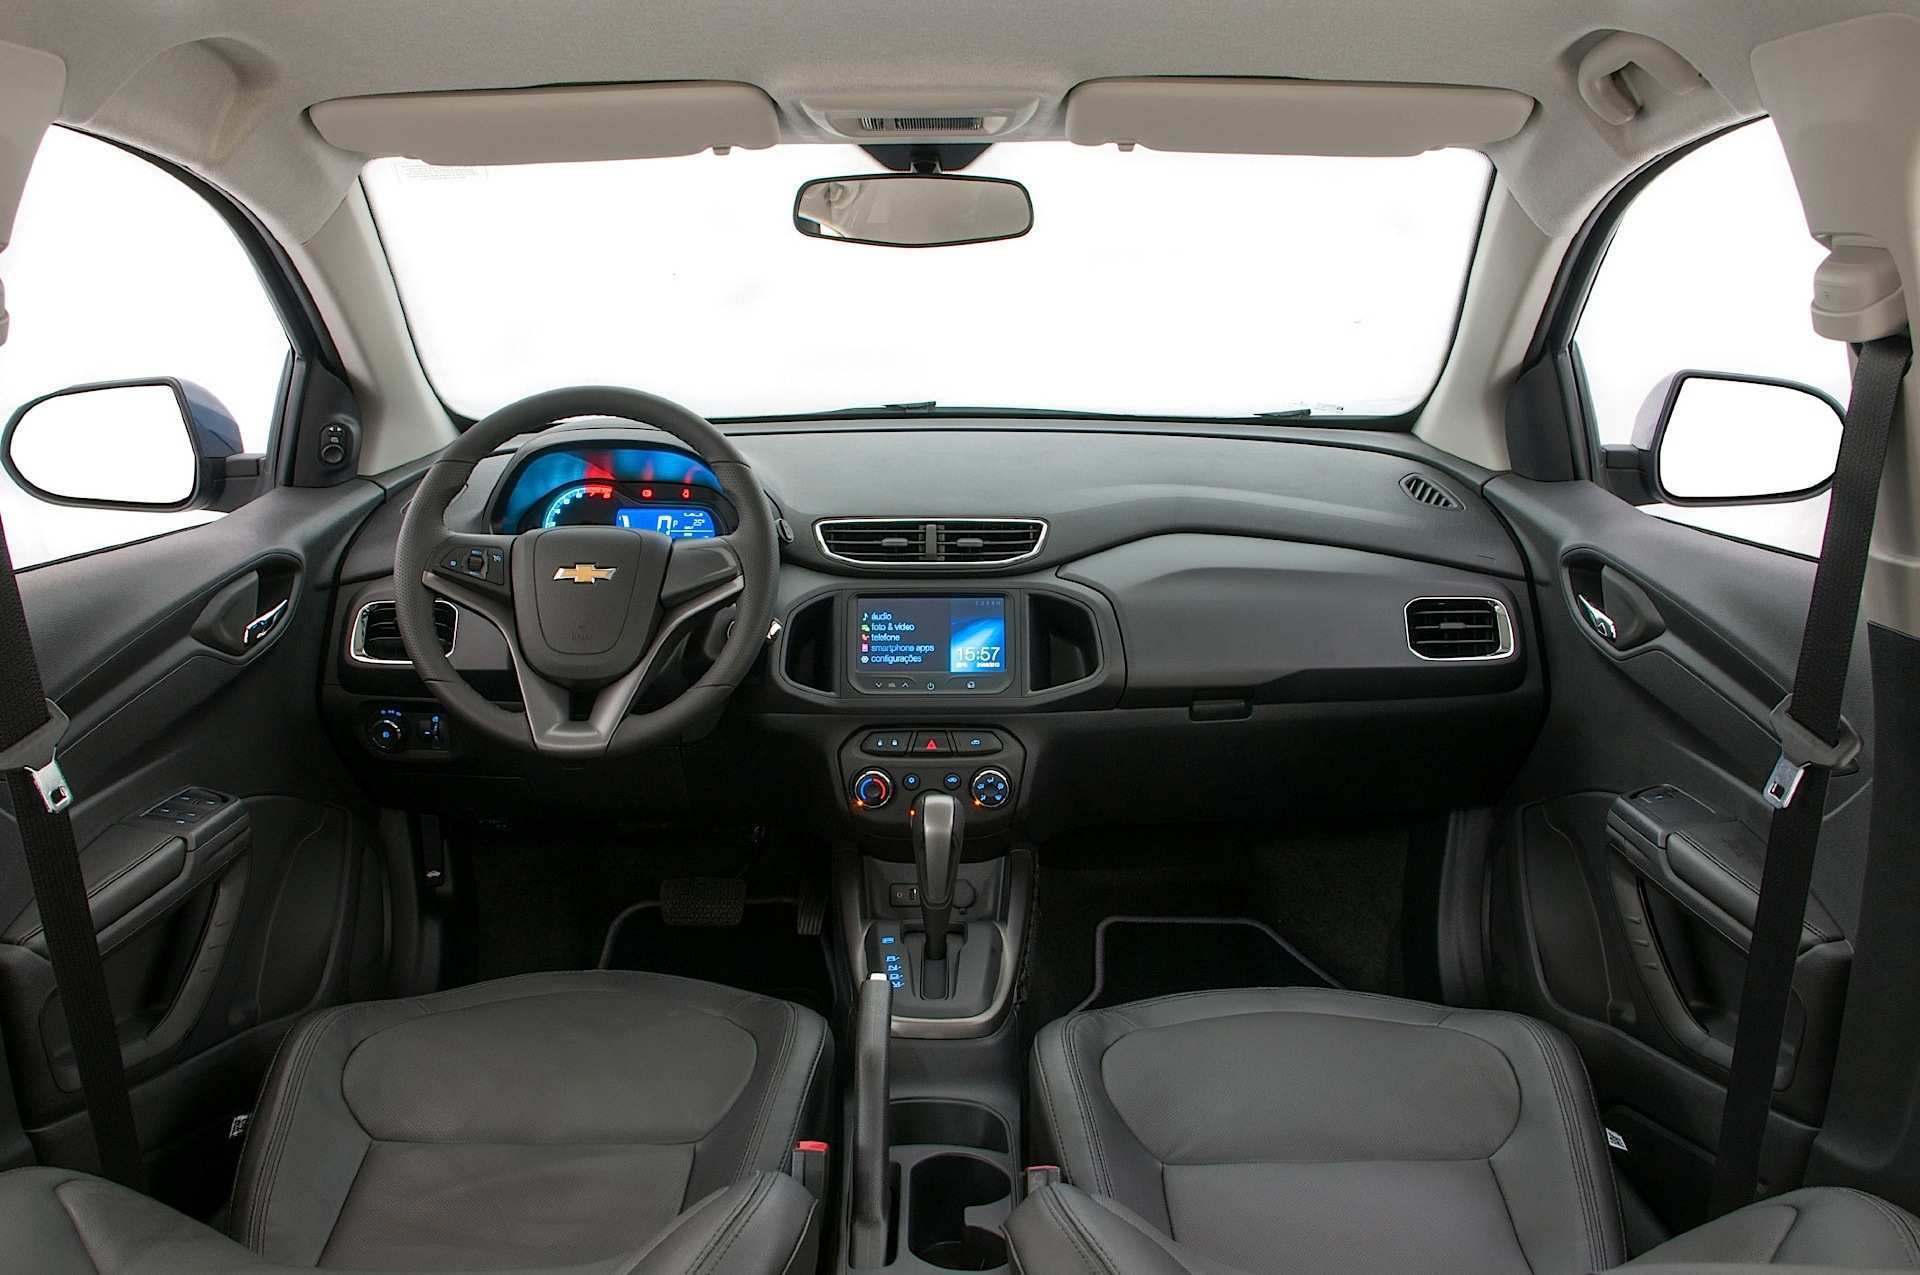 47 New Chevrolet Onix 2019 Interior First Drive by Chevrolet Onix 2019 Interior